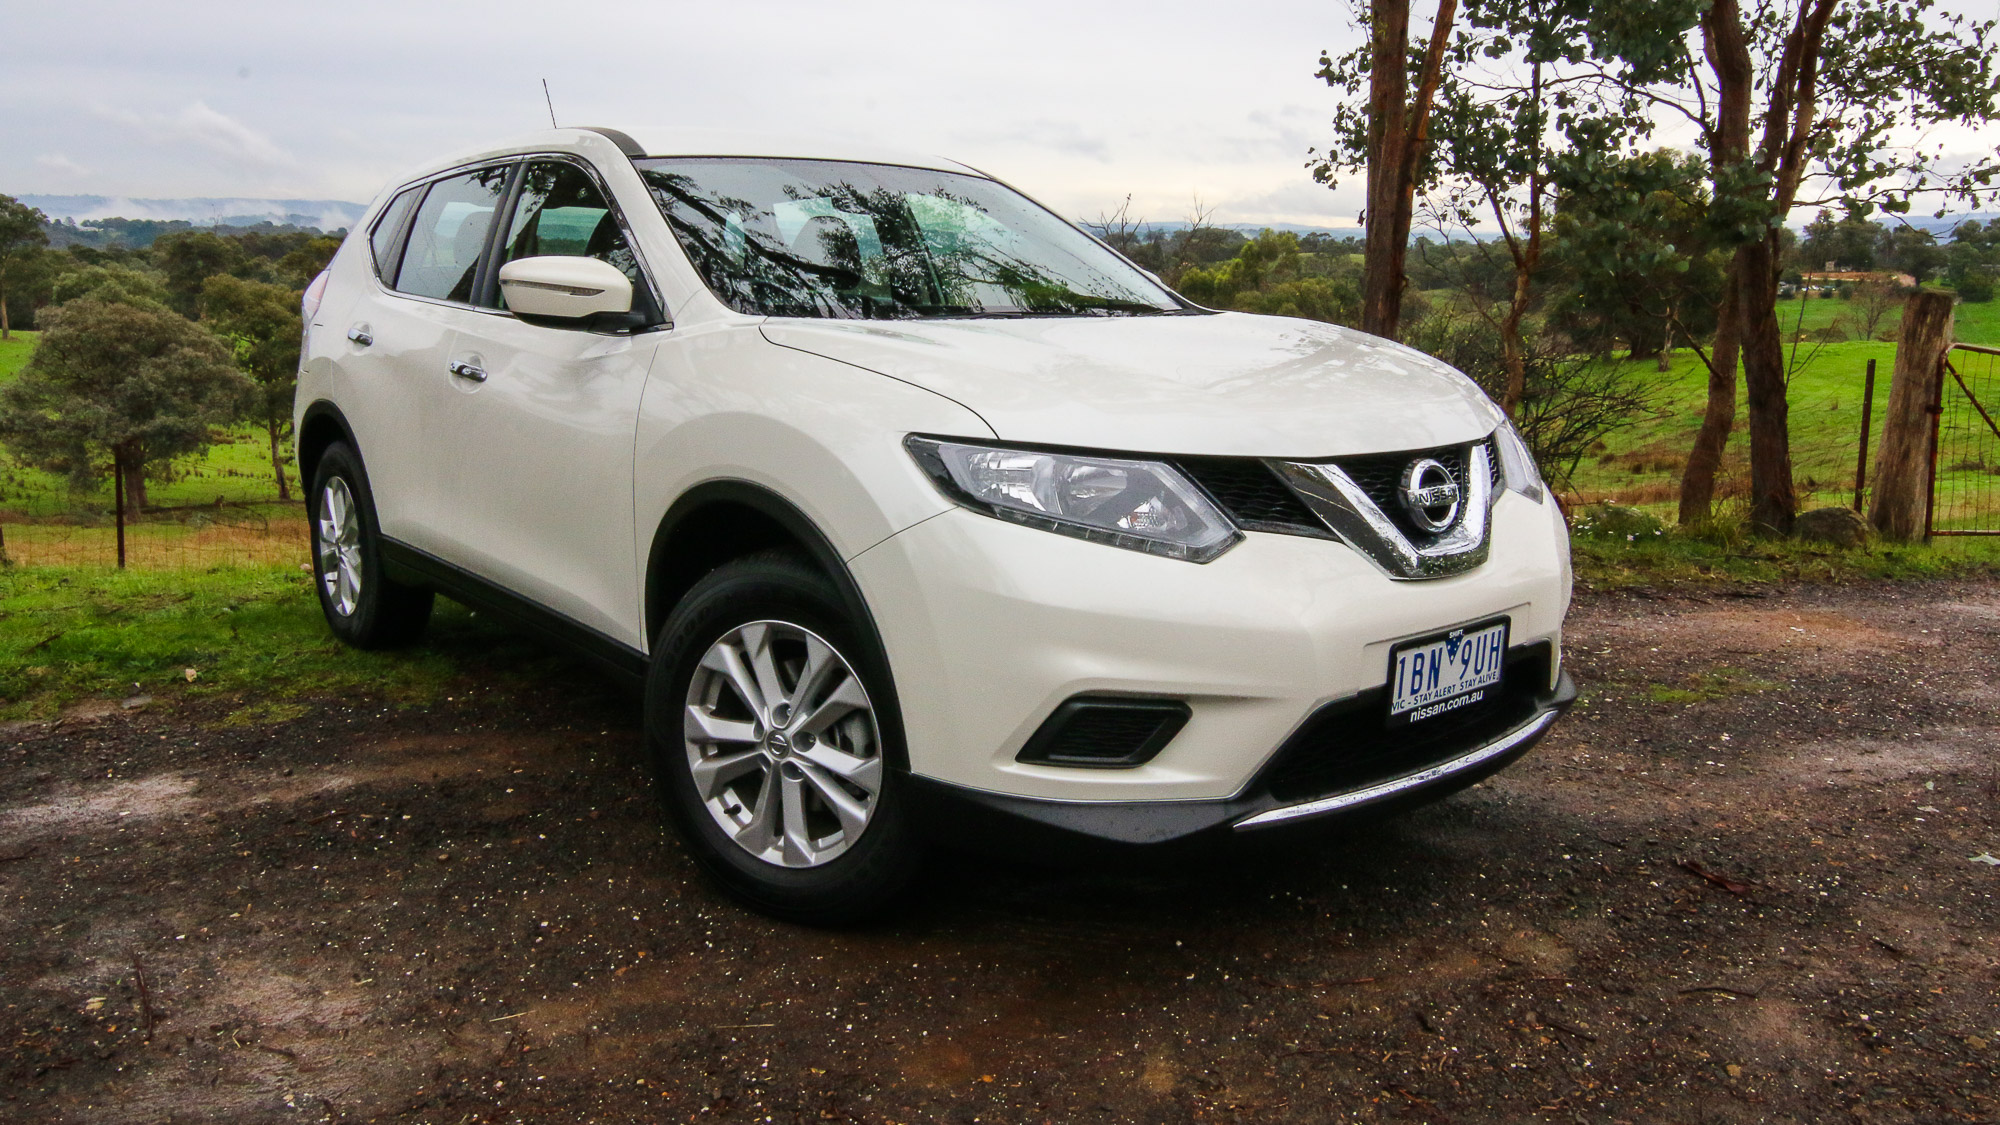 2014 nissan x trail review st 2 0l photos caradvice. Black Bedroom Furniture Sets. Home Design Ideas